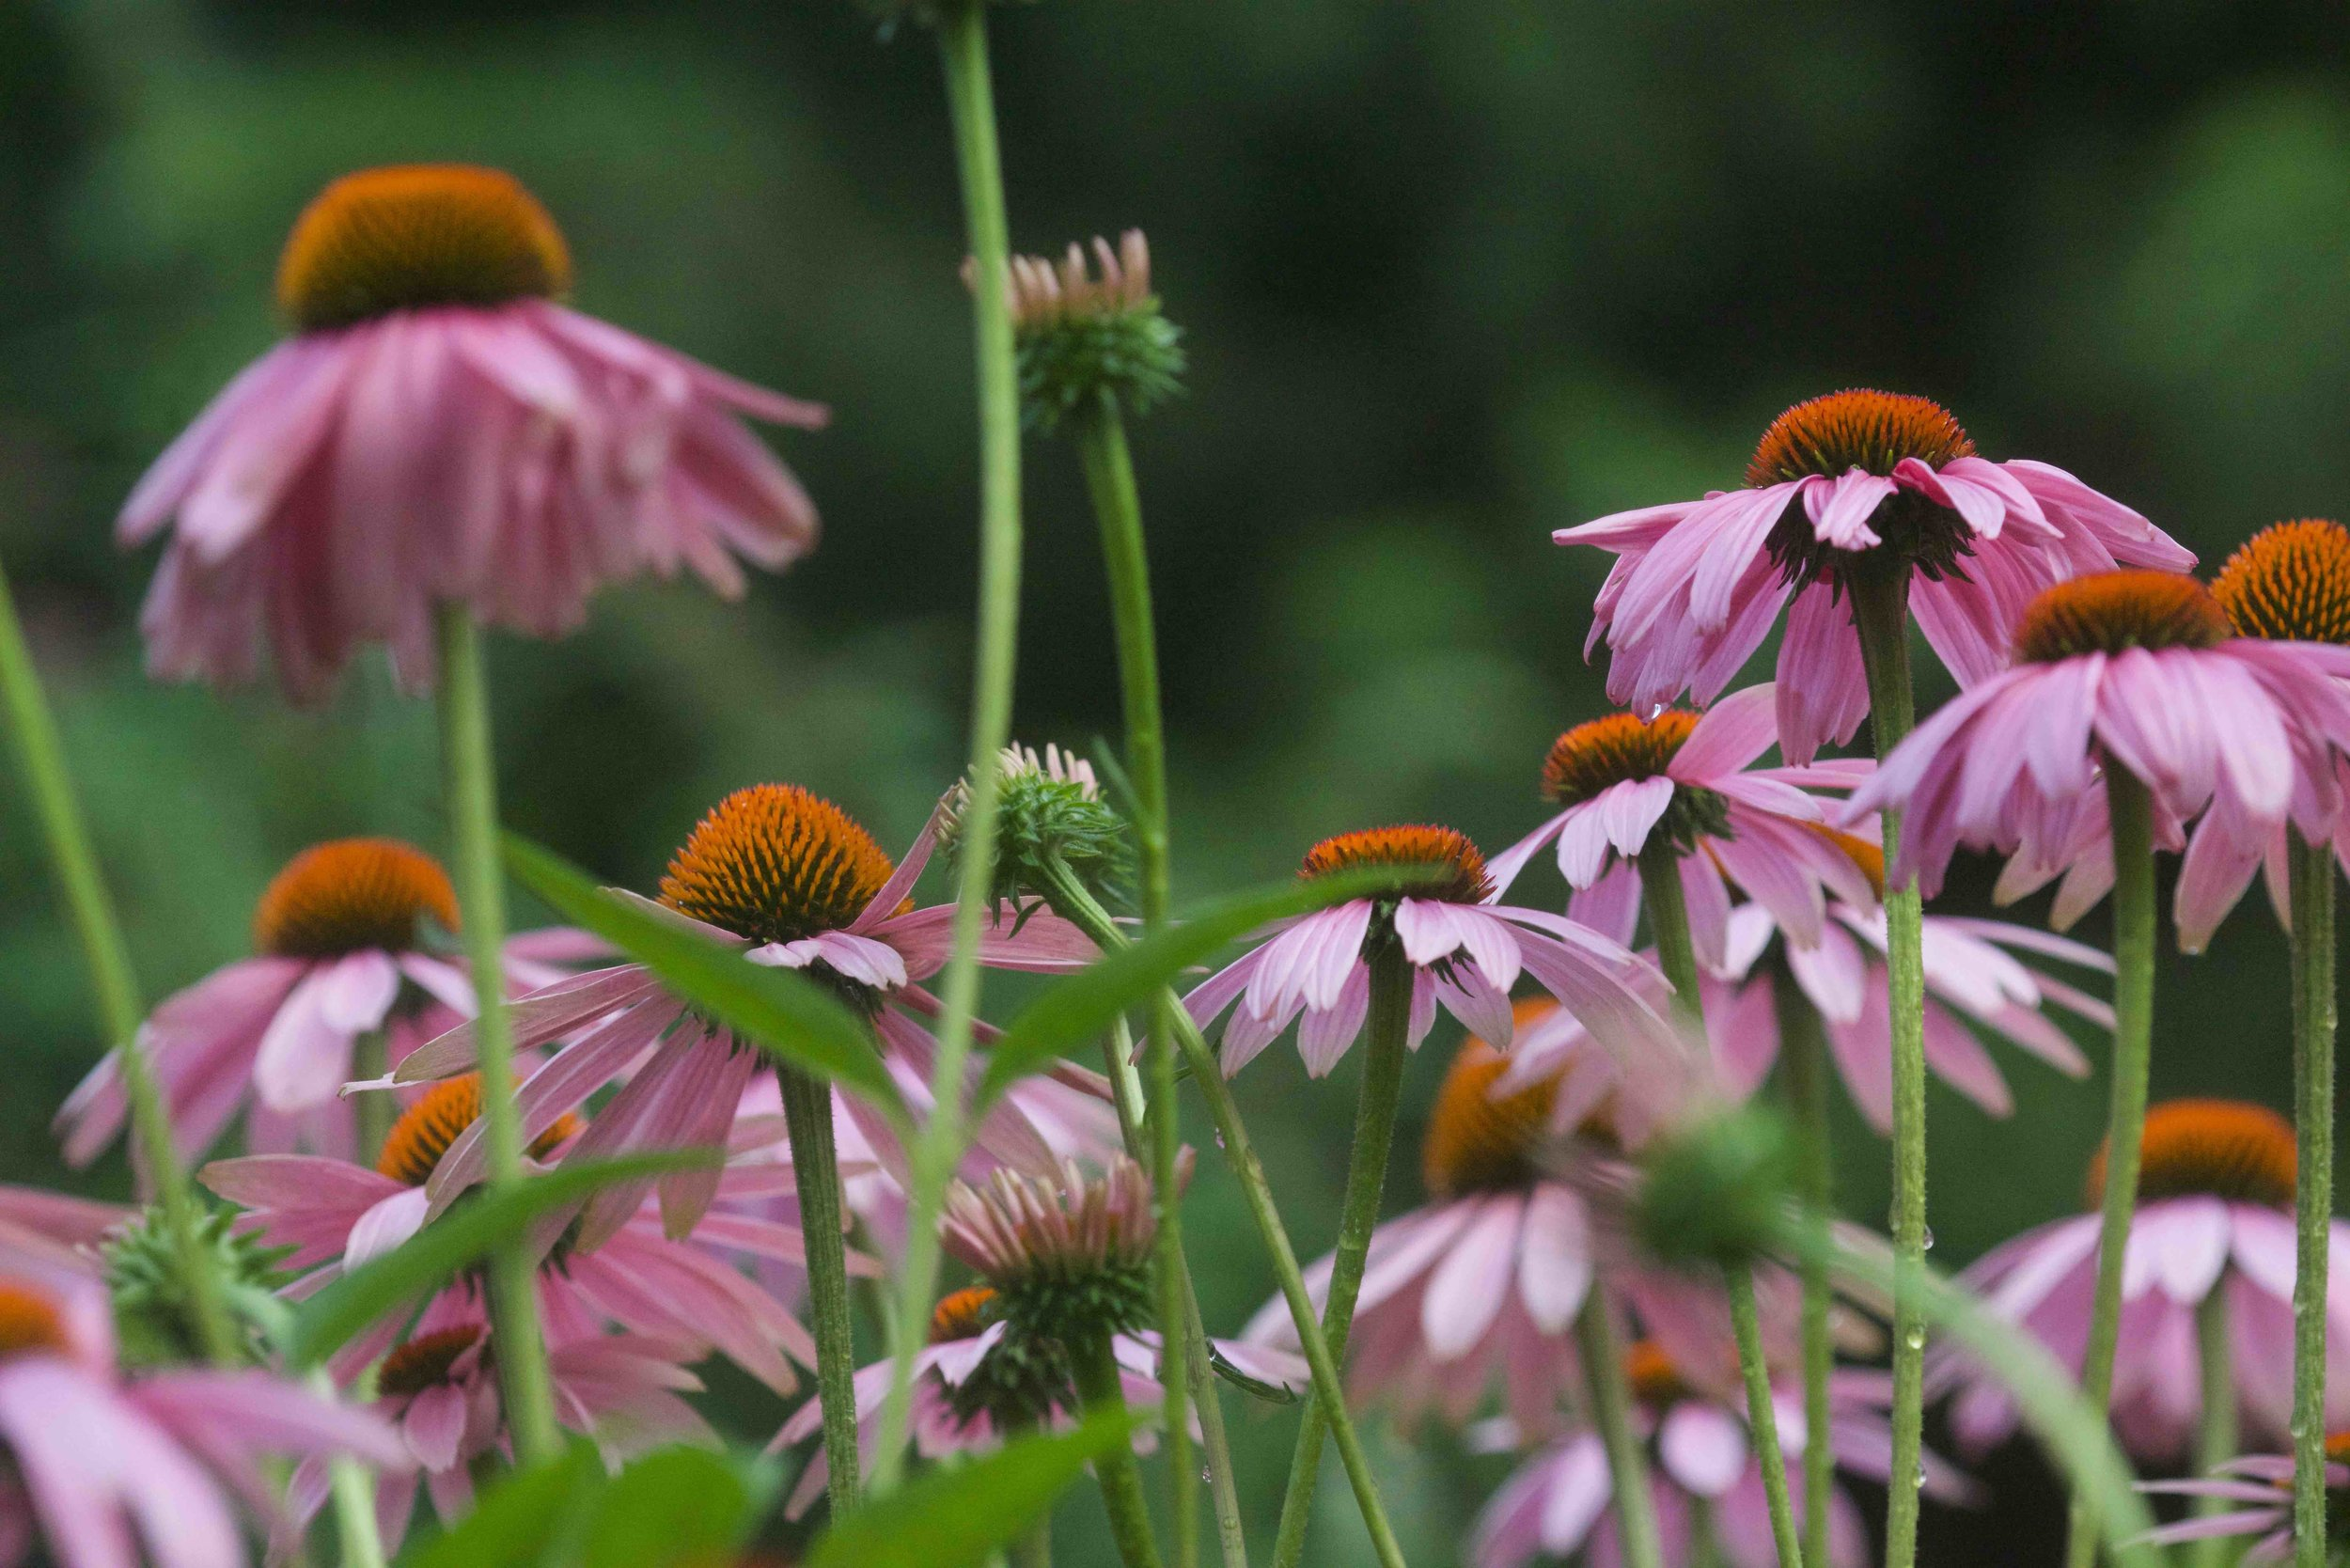 Echinacea close up